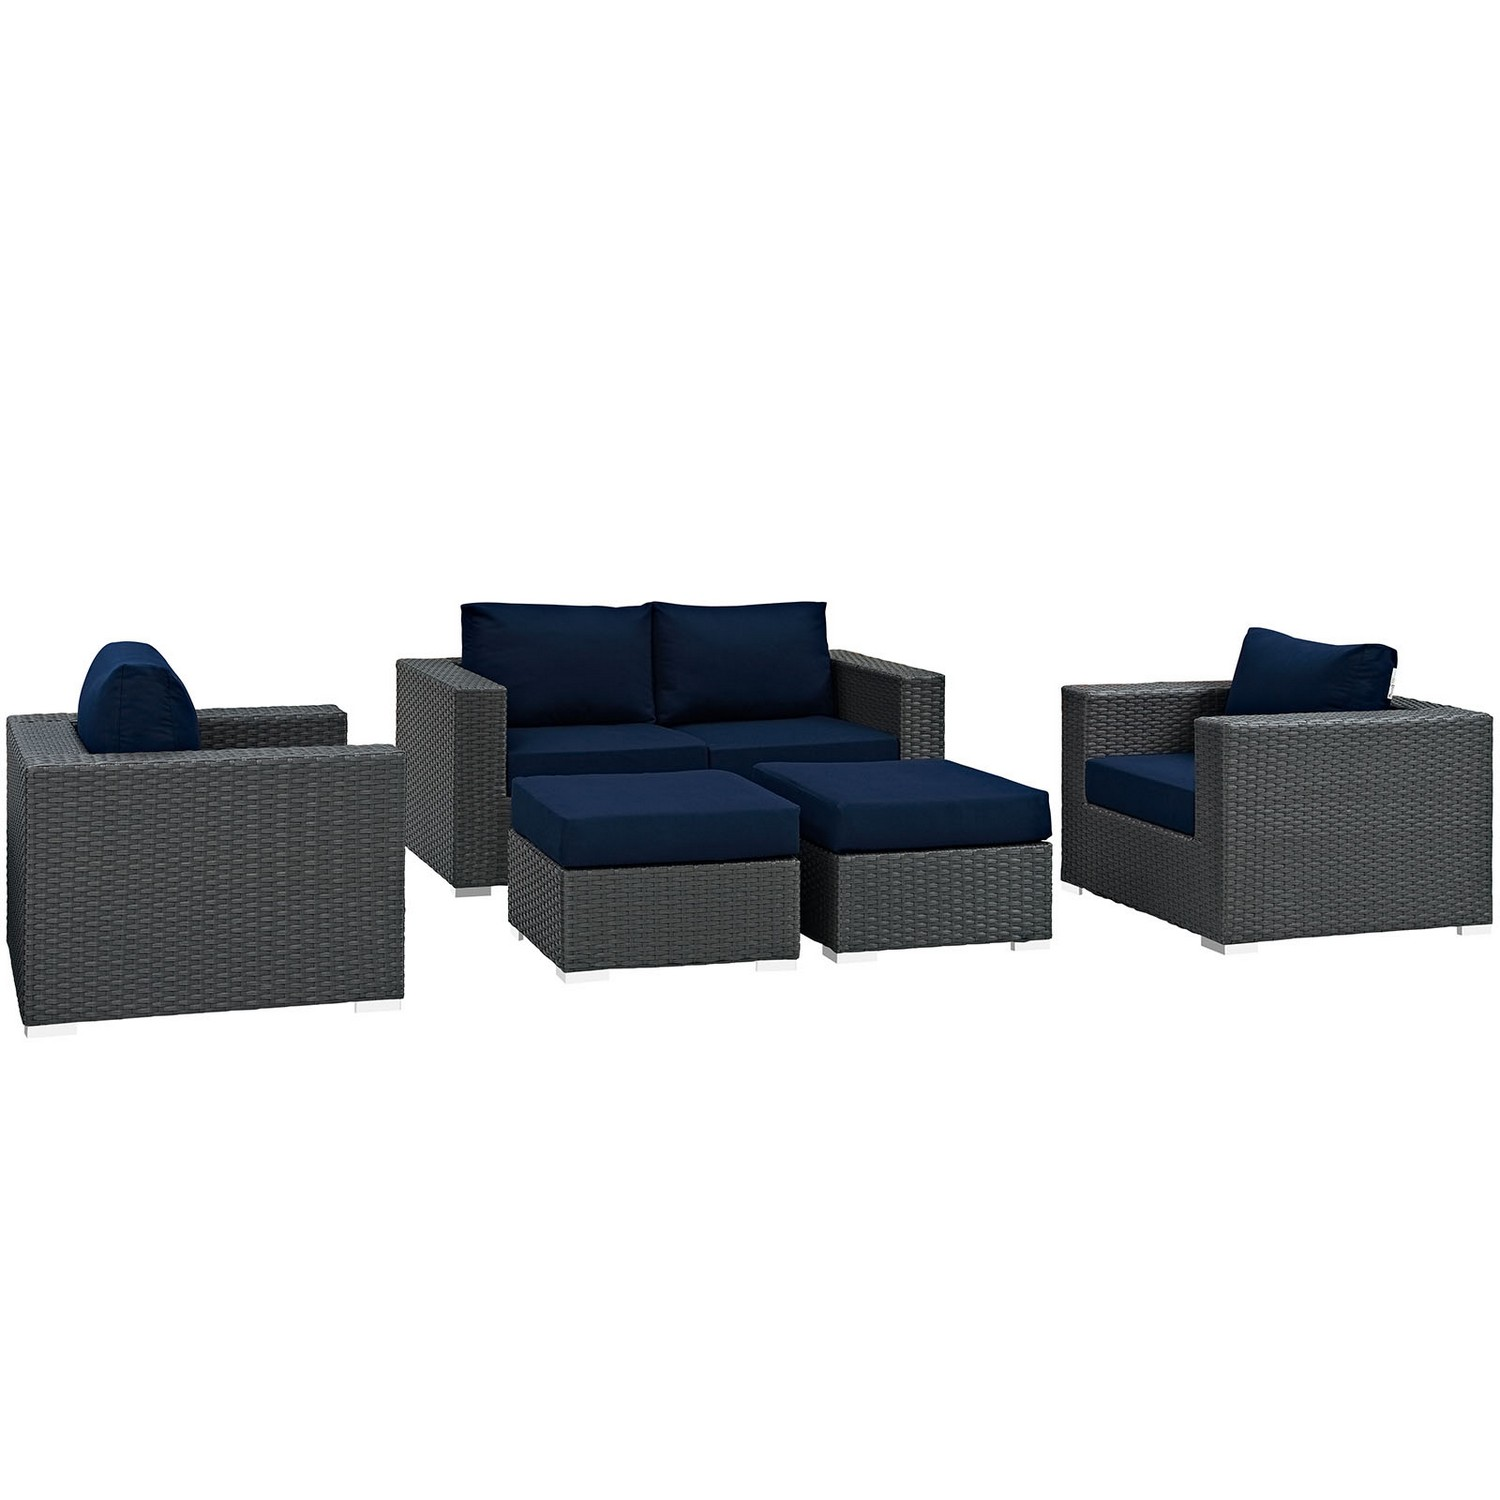 Modway Sojourn 5 Piece Outdoor Patio Sunbrella Sectional Set - Canvas Navy